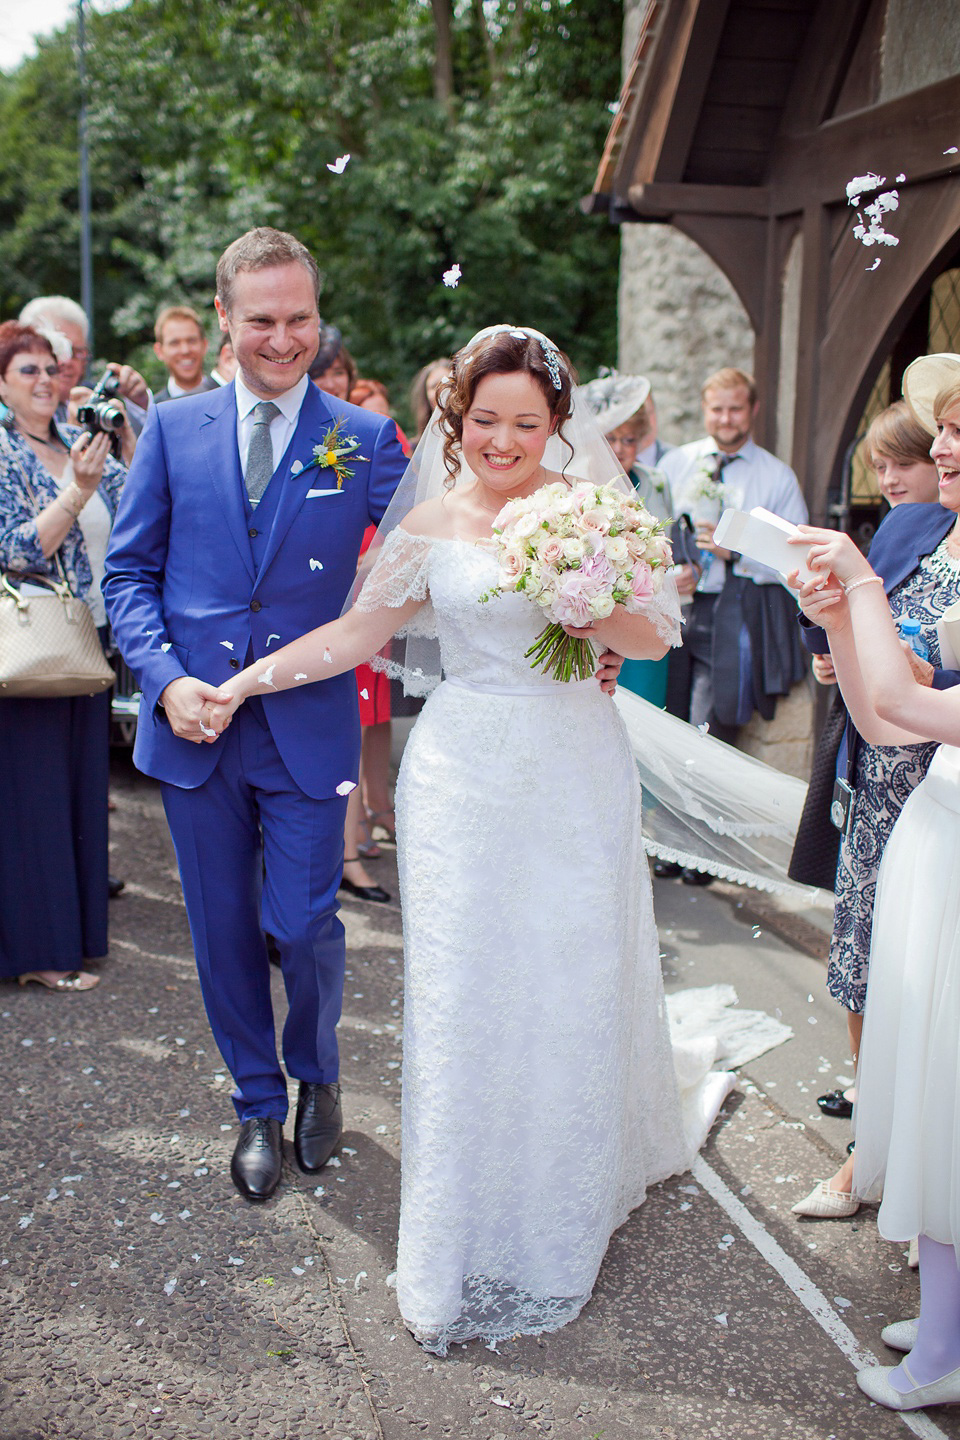 A Railway Museum Wedding with an Elegant Handmade Lace Gown and Maids in Navy Blue